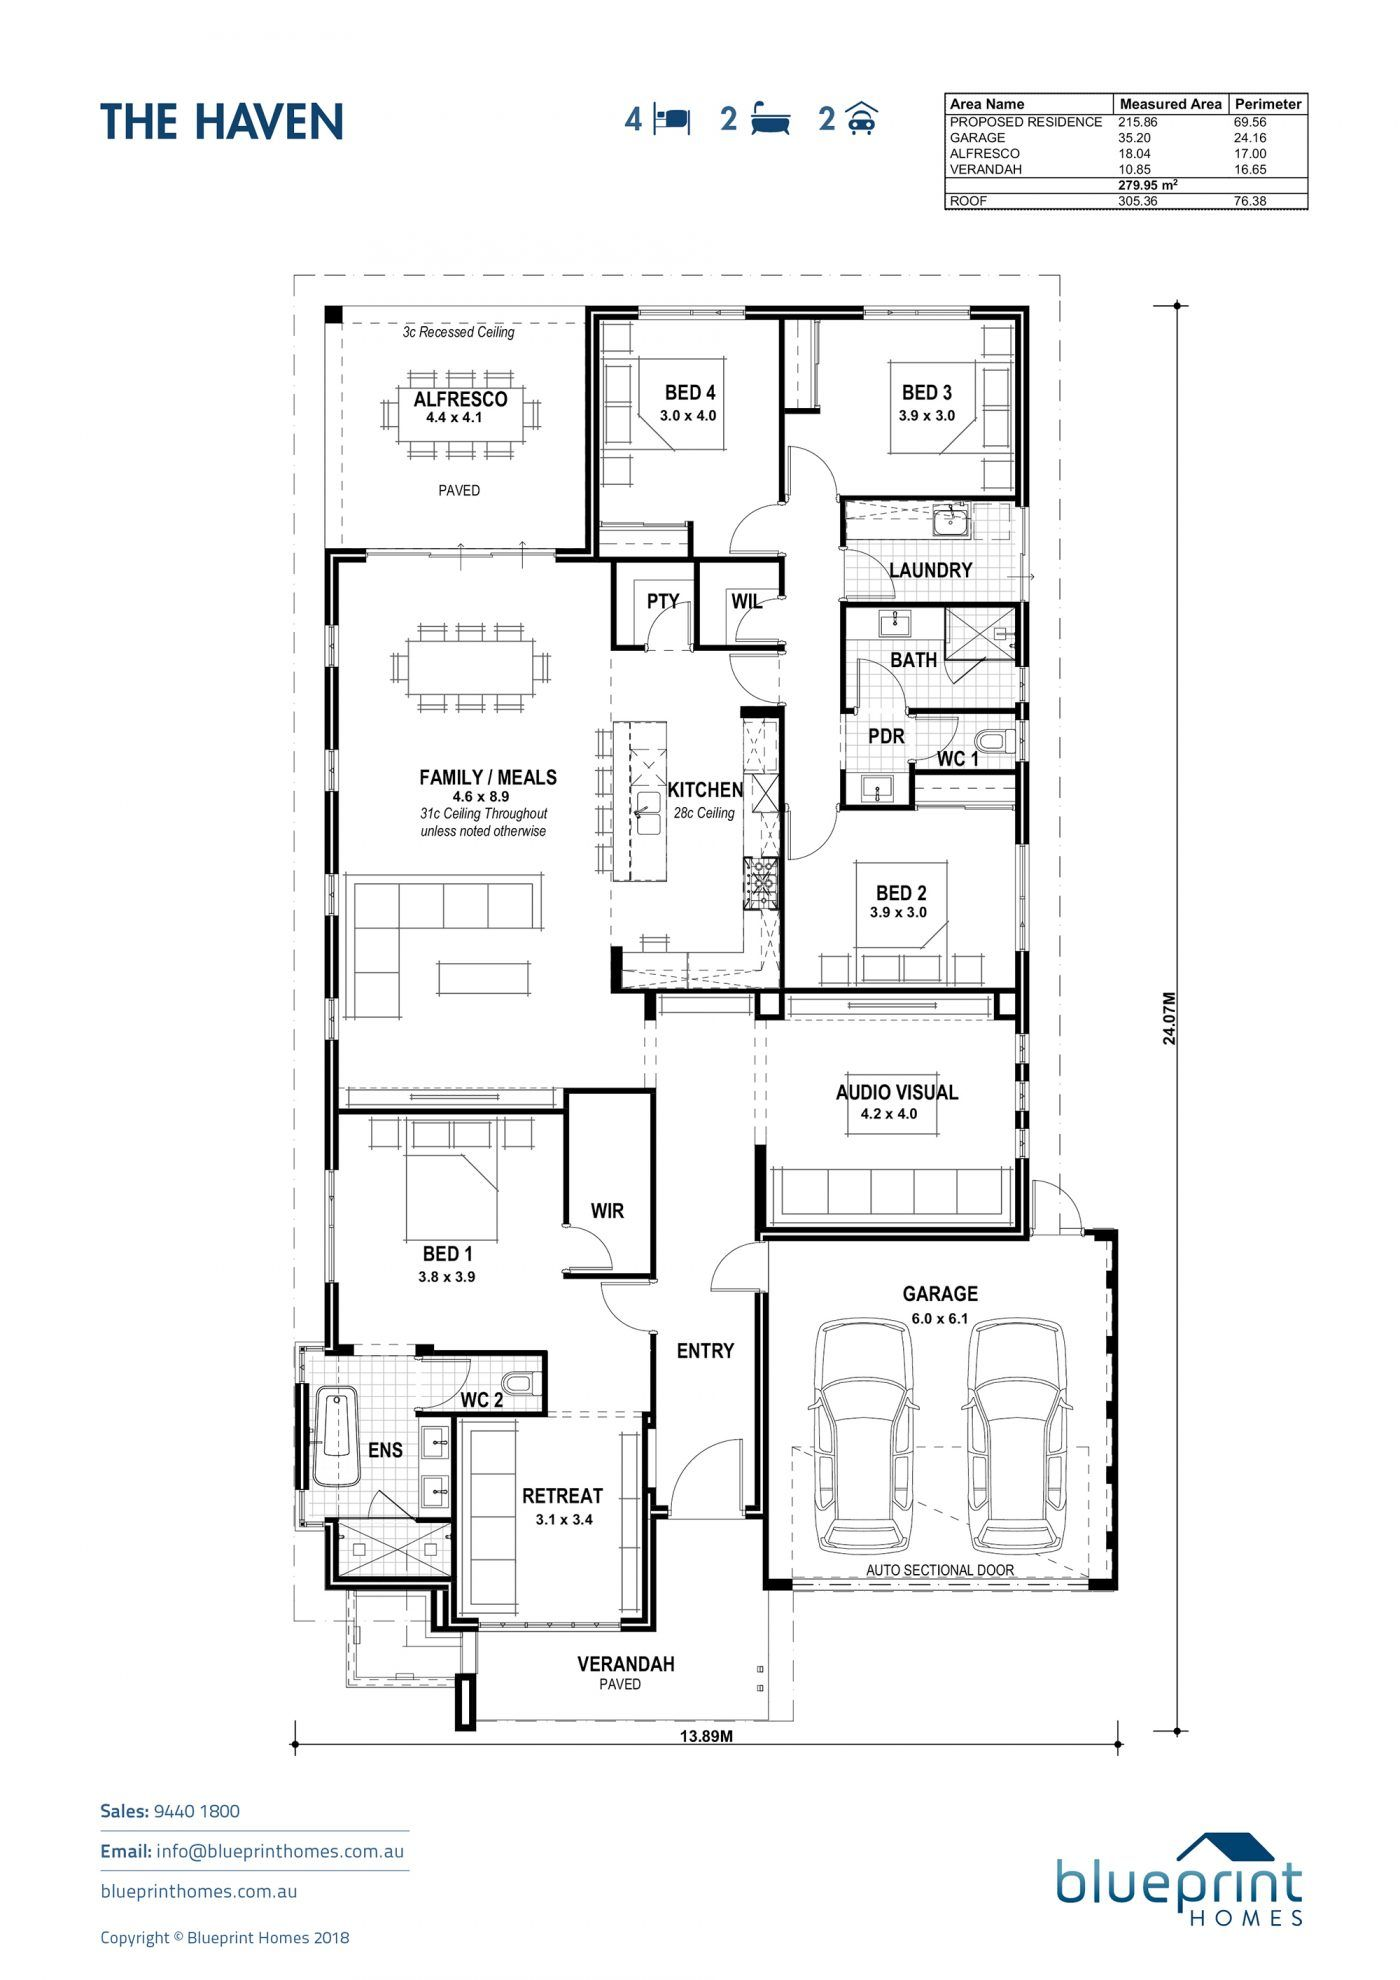 The Haven Perth Ex Display Home Blueprint Homes House Blueprints Architectural House Plans Display Homes